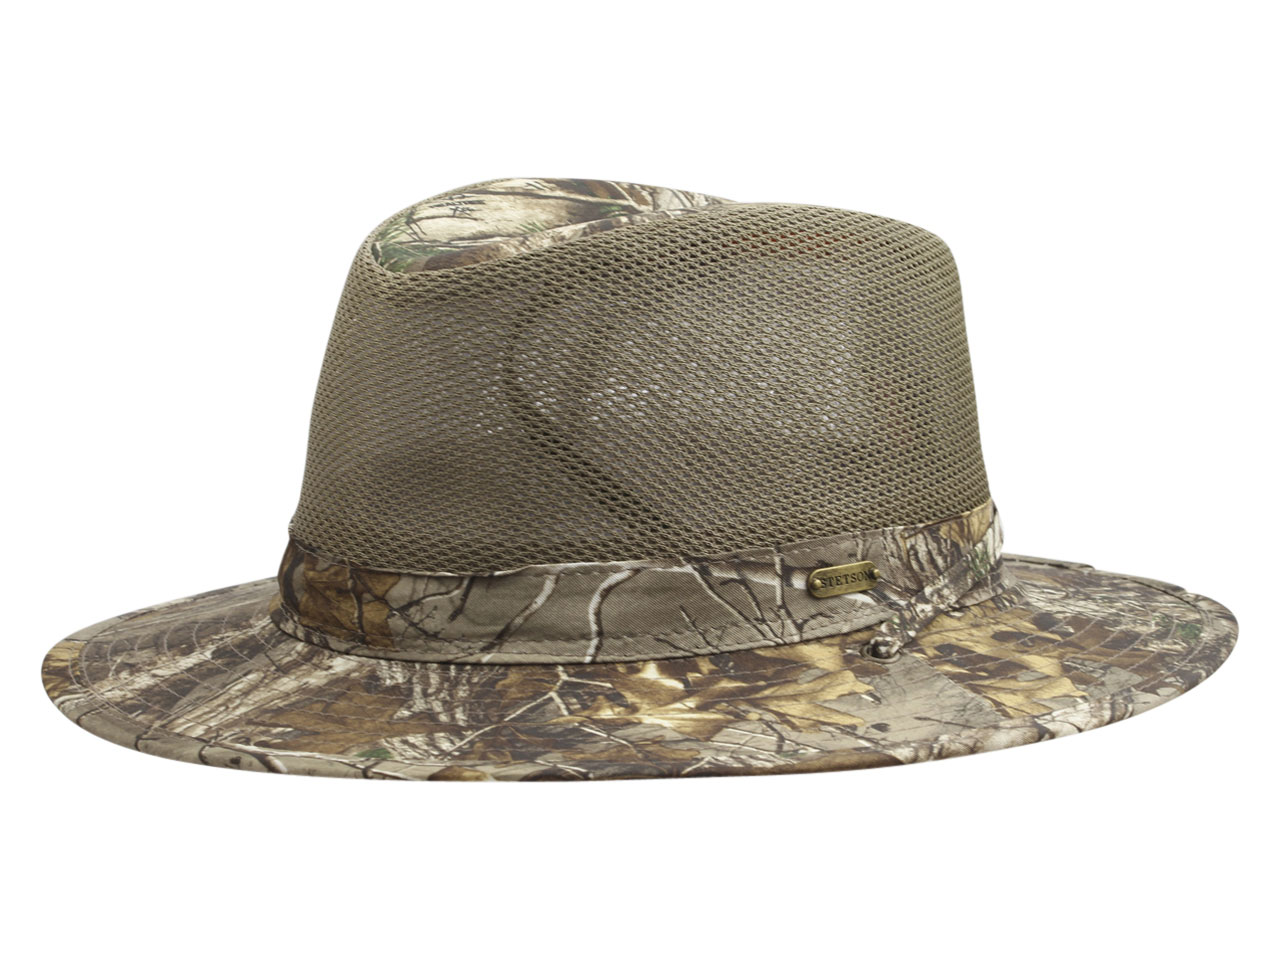 79ba4d9c64a Stetson Men s Realtree Xtra No Fly Zone Insect Repellent Safari Hat ...